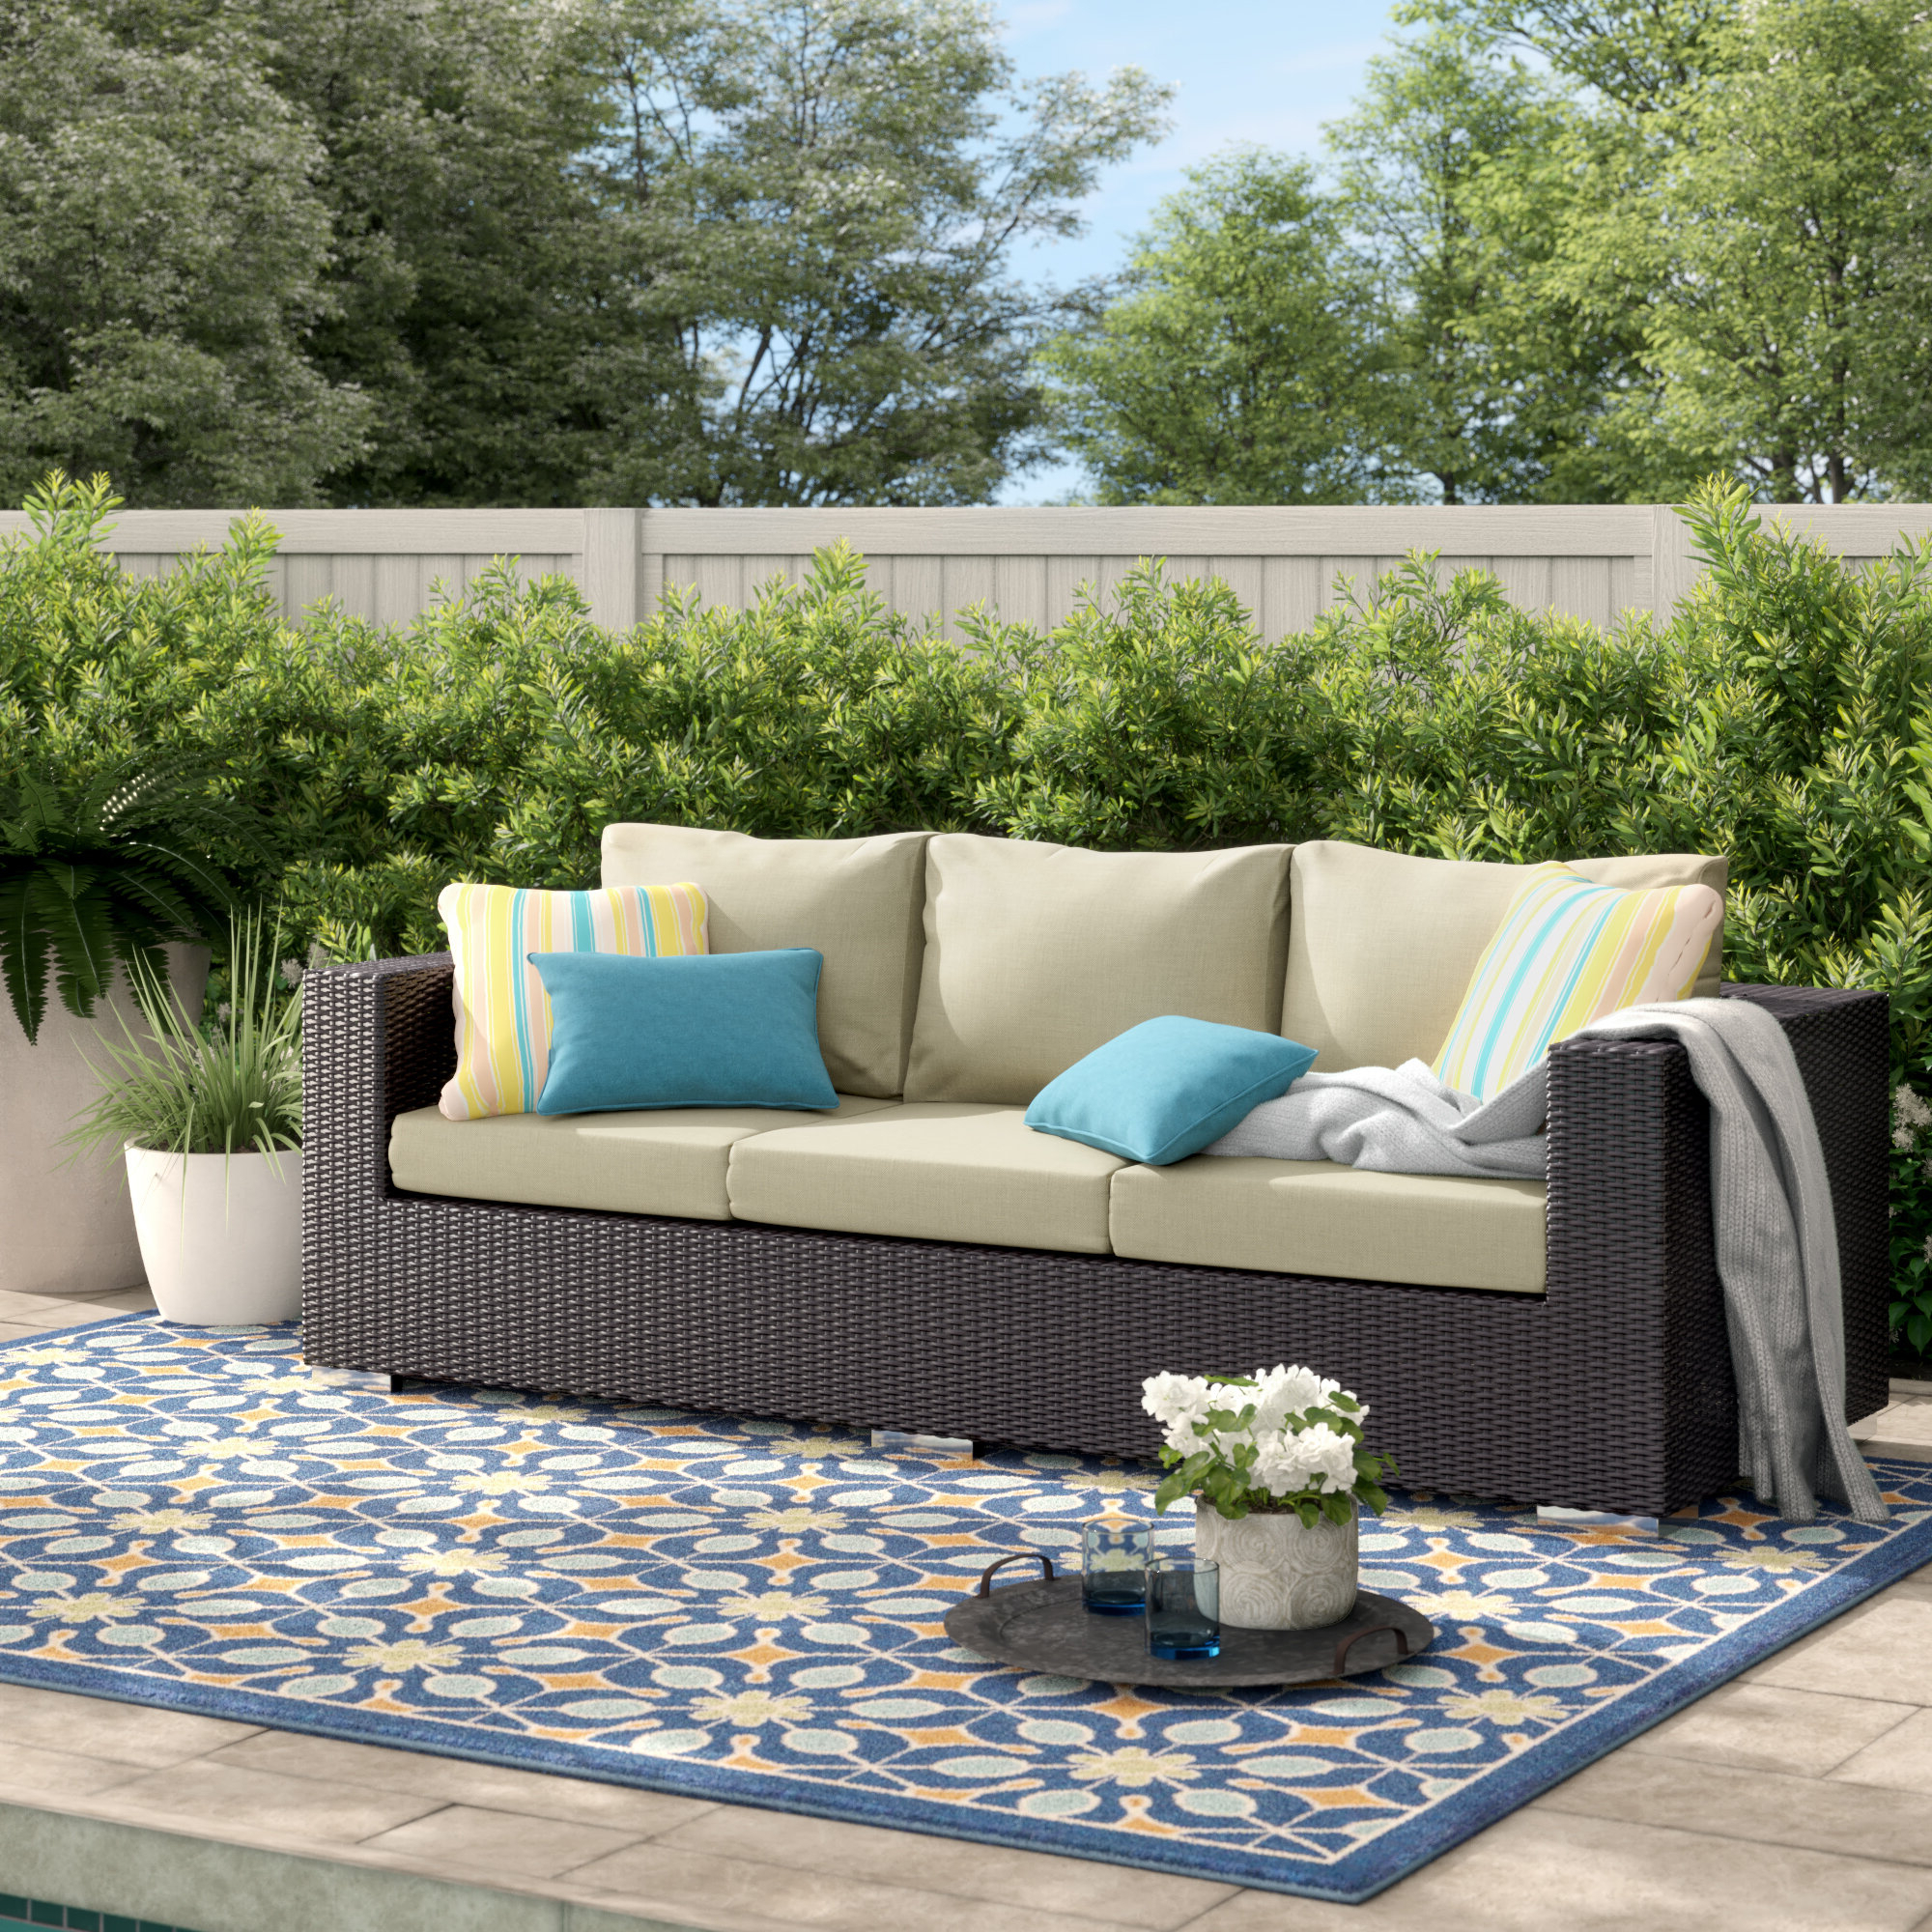 Best And Newest Brentwood Patio Sofa With Cushions For Patio Sofas With Cushions (View 2 of 20)